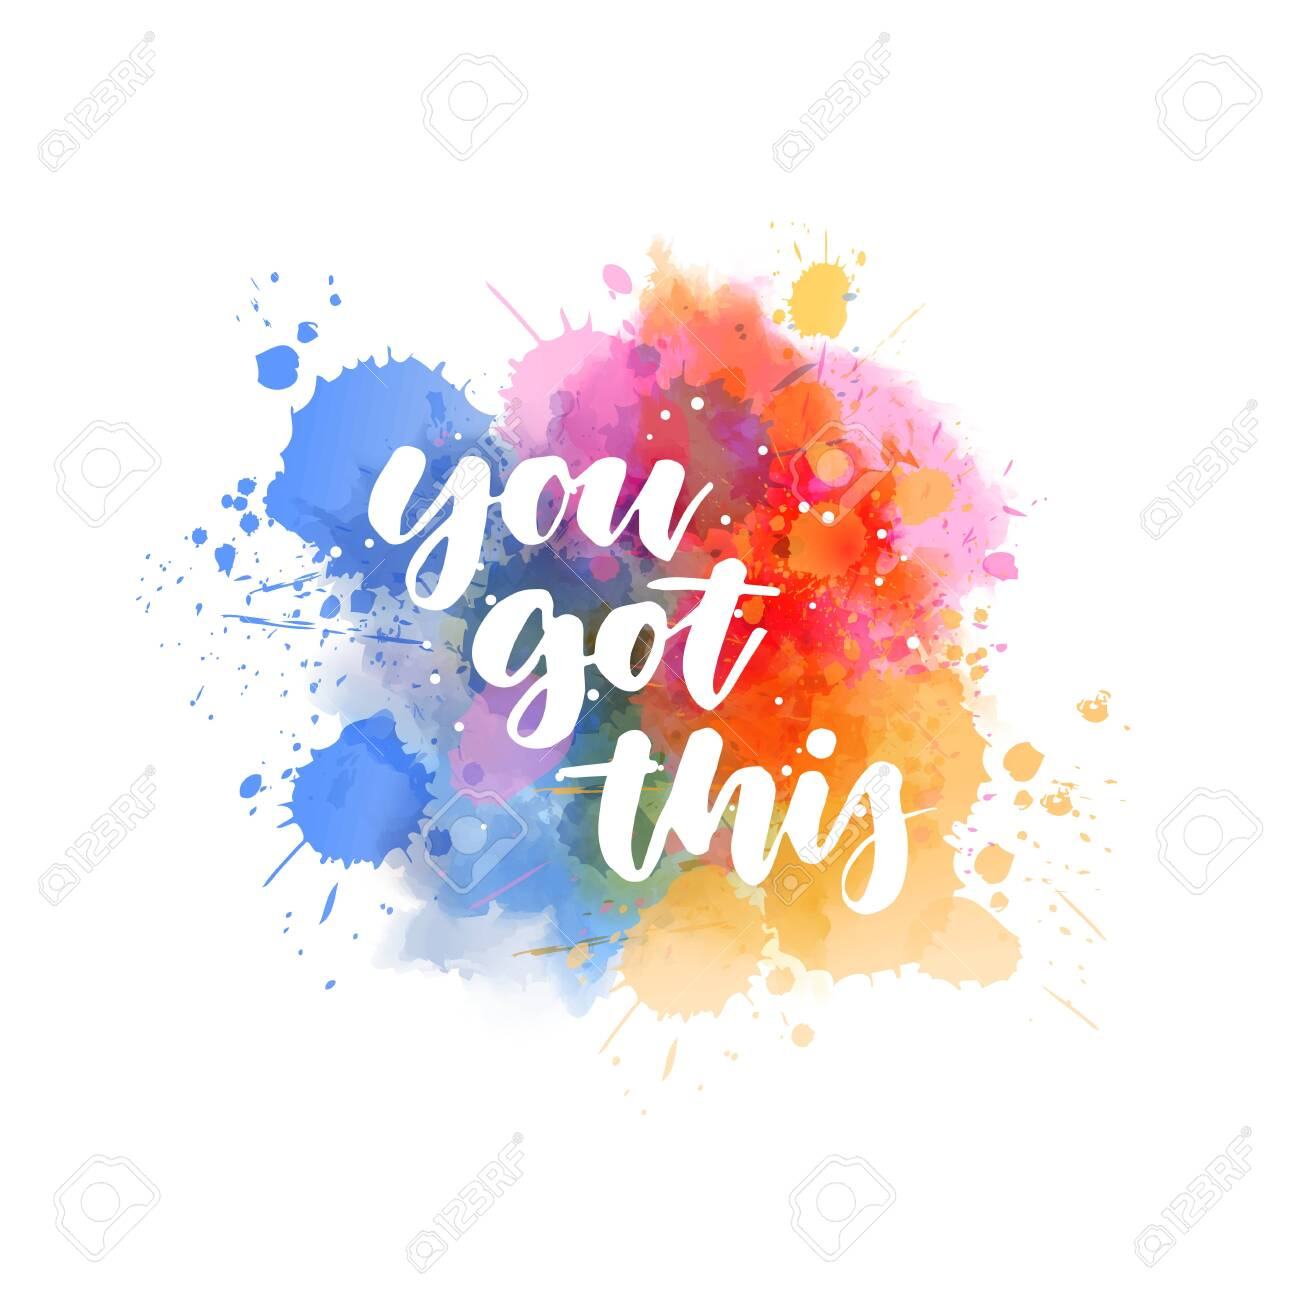 You got this - handwritten lettering on abstract painted watercolor splash. Blue and pink colored. - 145982606